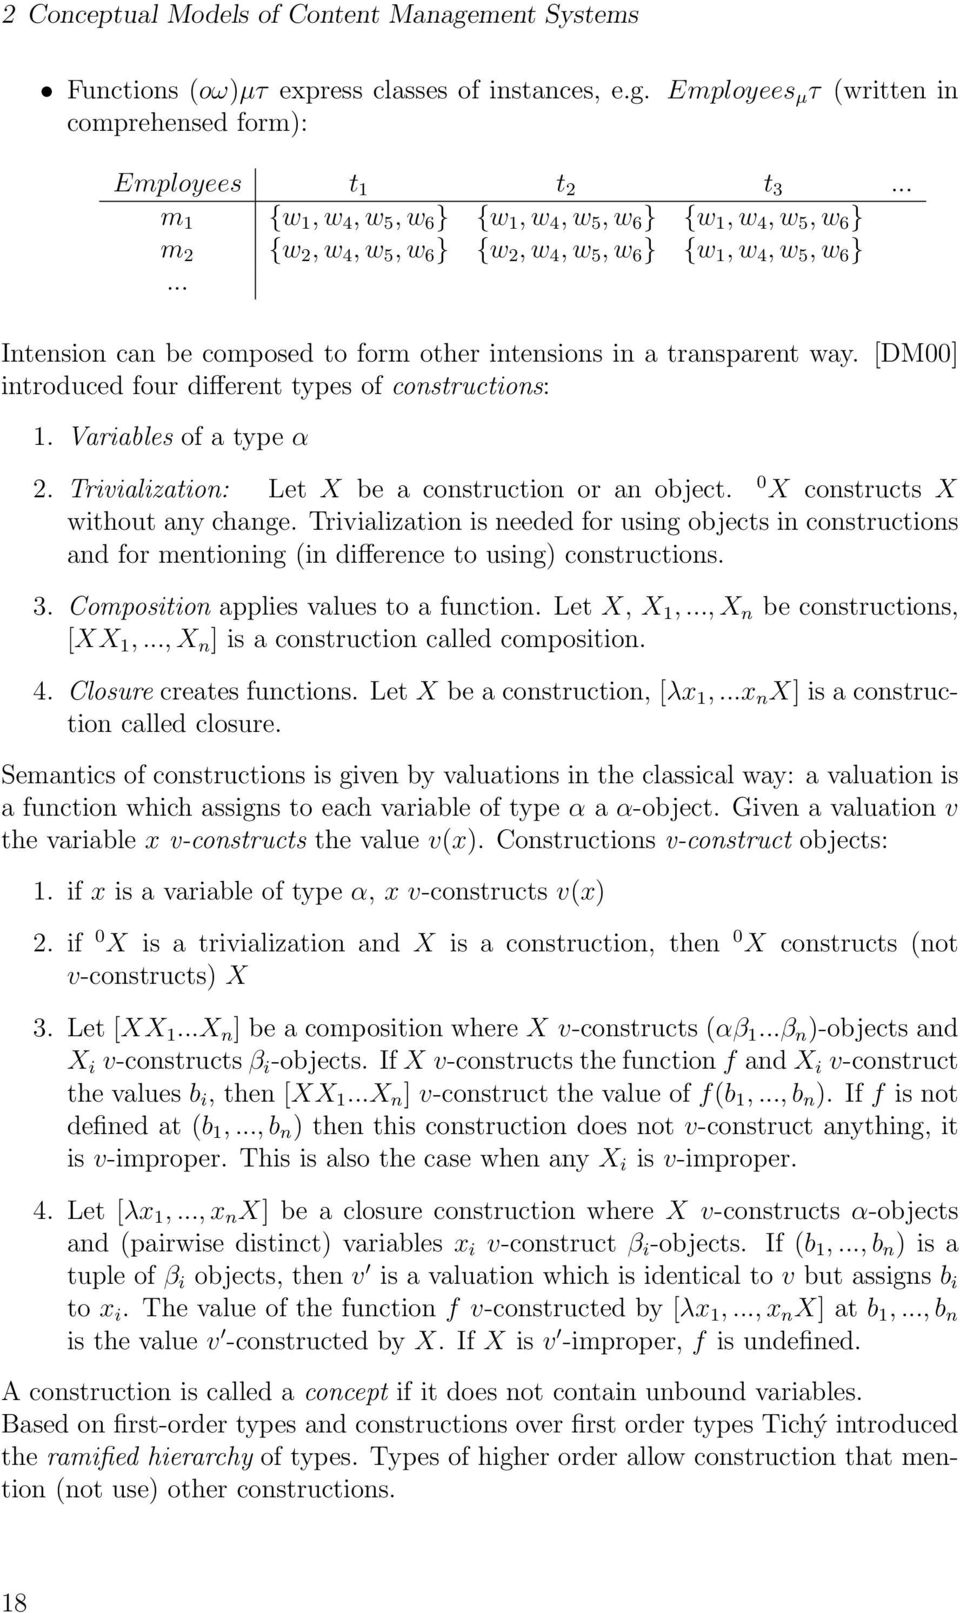 four different types of constructions: 1 Variables of a type α 2 Trivialization: Let X be a construction or an object 0 X constructs X without any change Trivialization is needed for using objects in